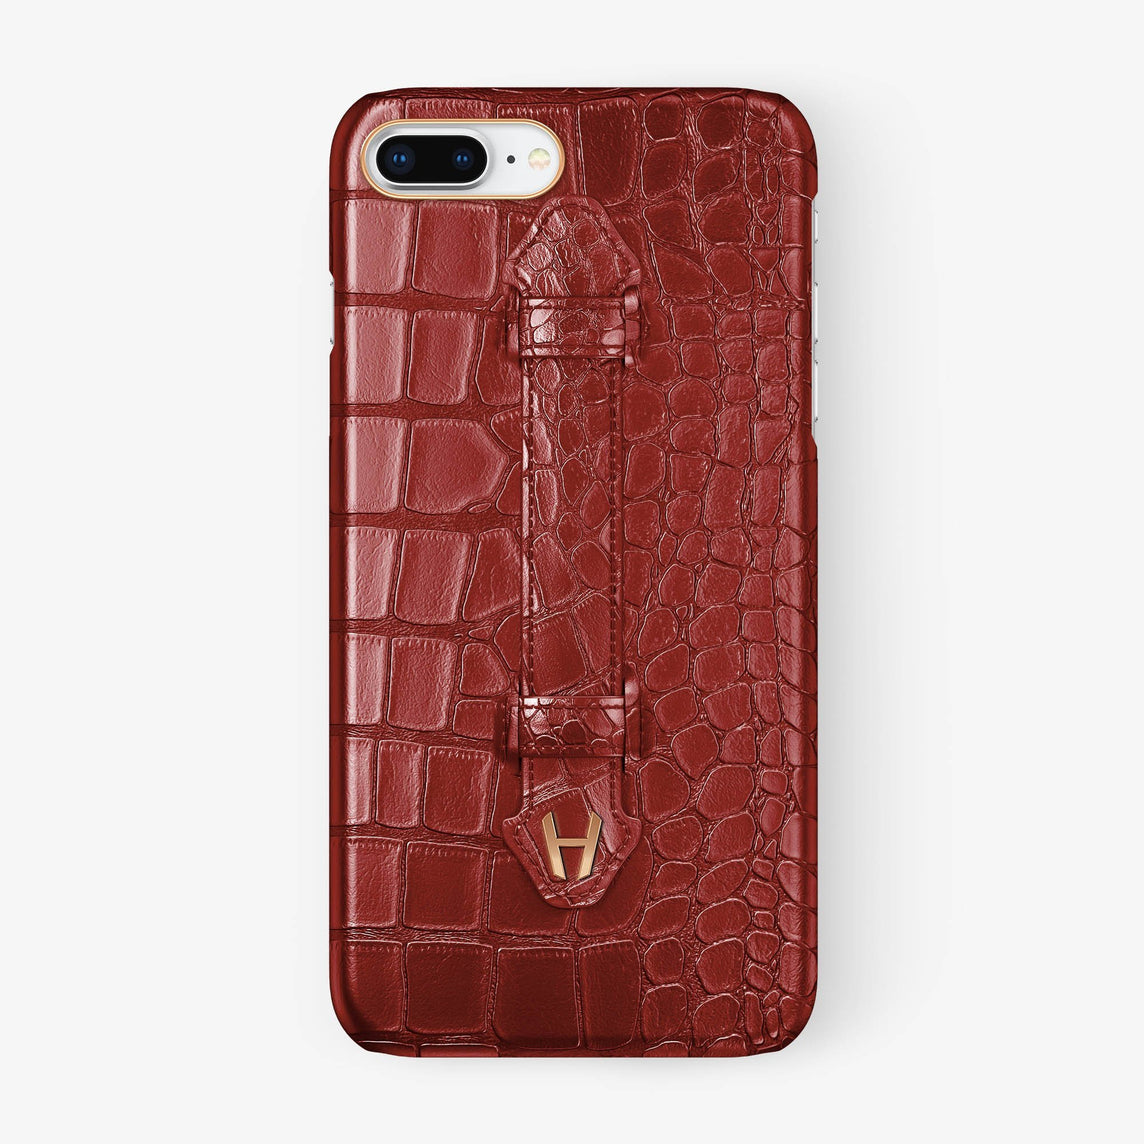 Red Alligator iPhone Finger Case for iPhone 7/8 Plus finishing rose gold - Hadoro Luxury Cases